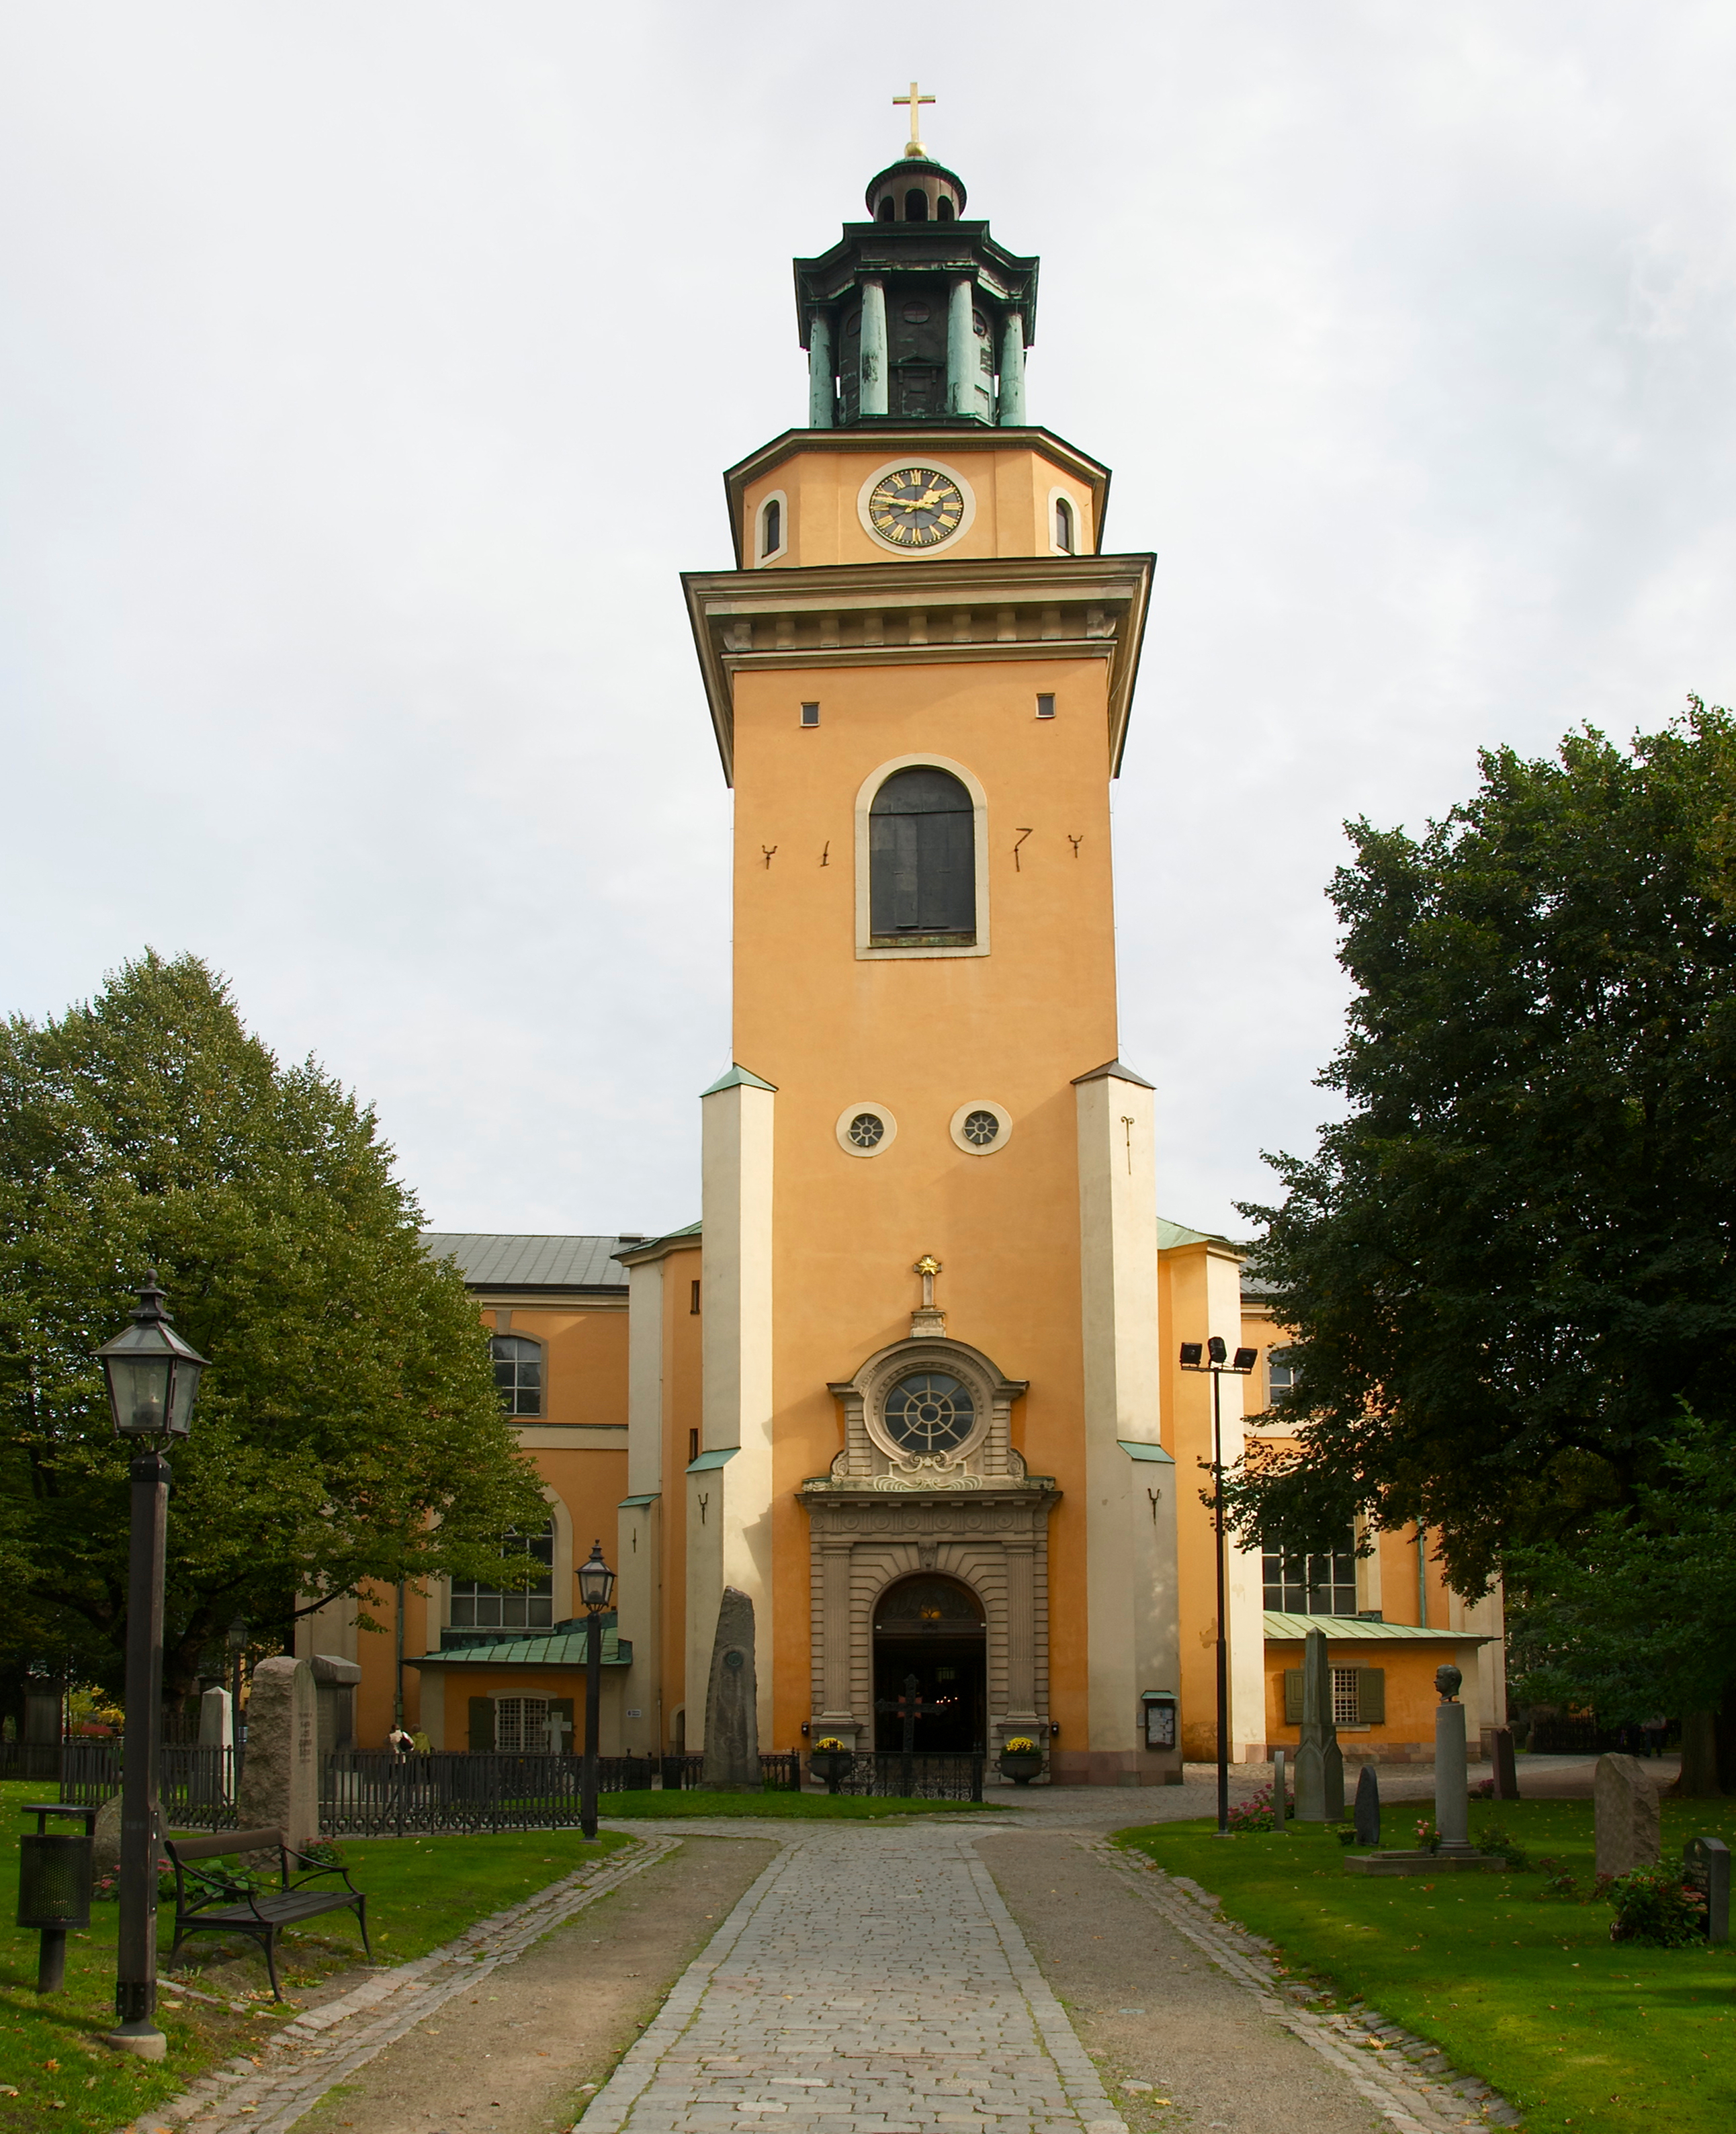 September 2011: File:Maria Magdalena Kyrka September 2011.jpg